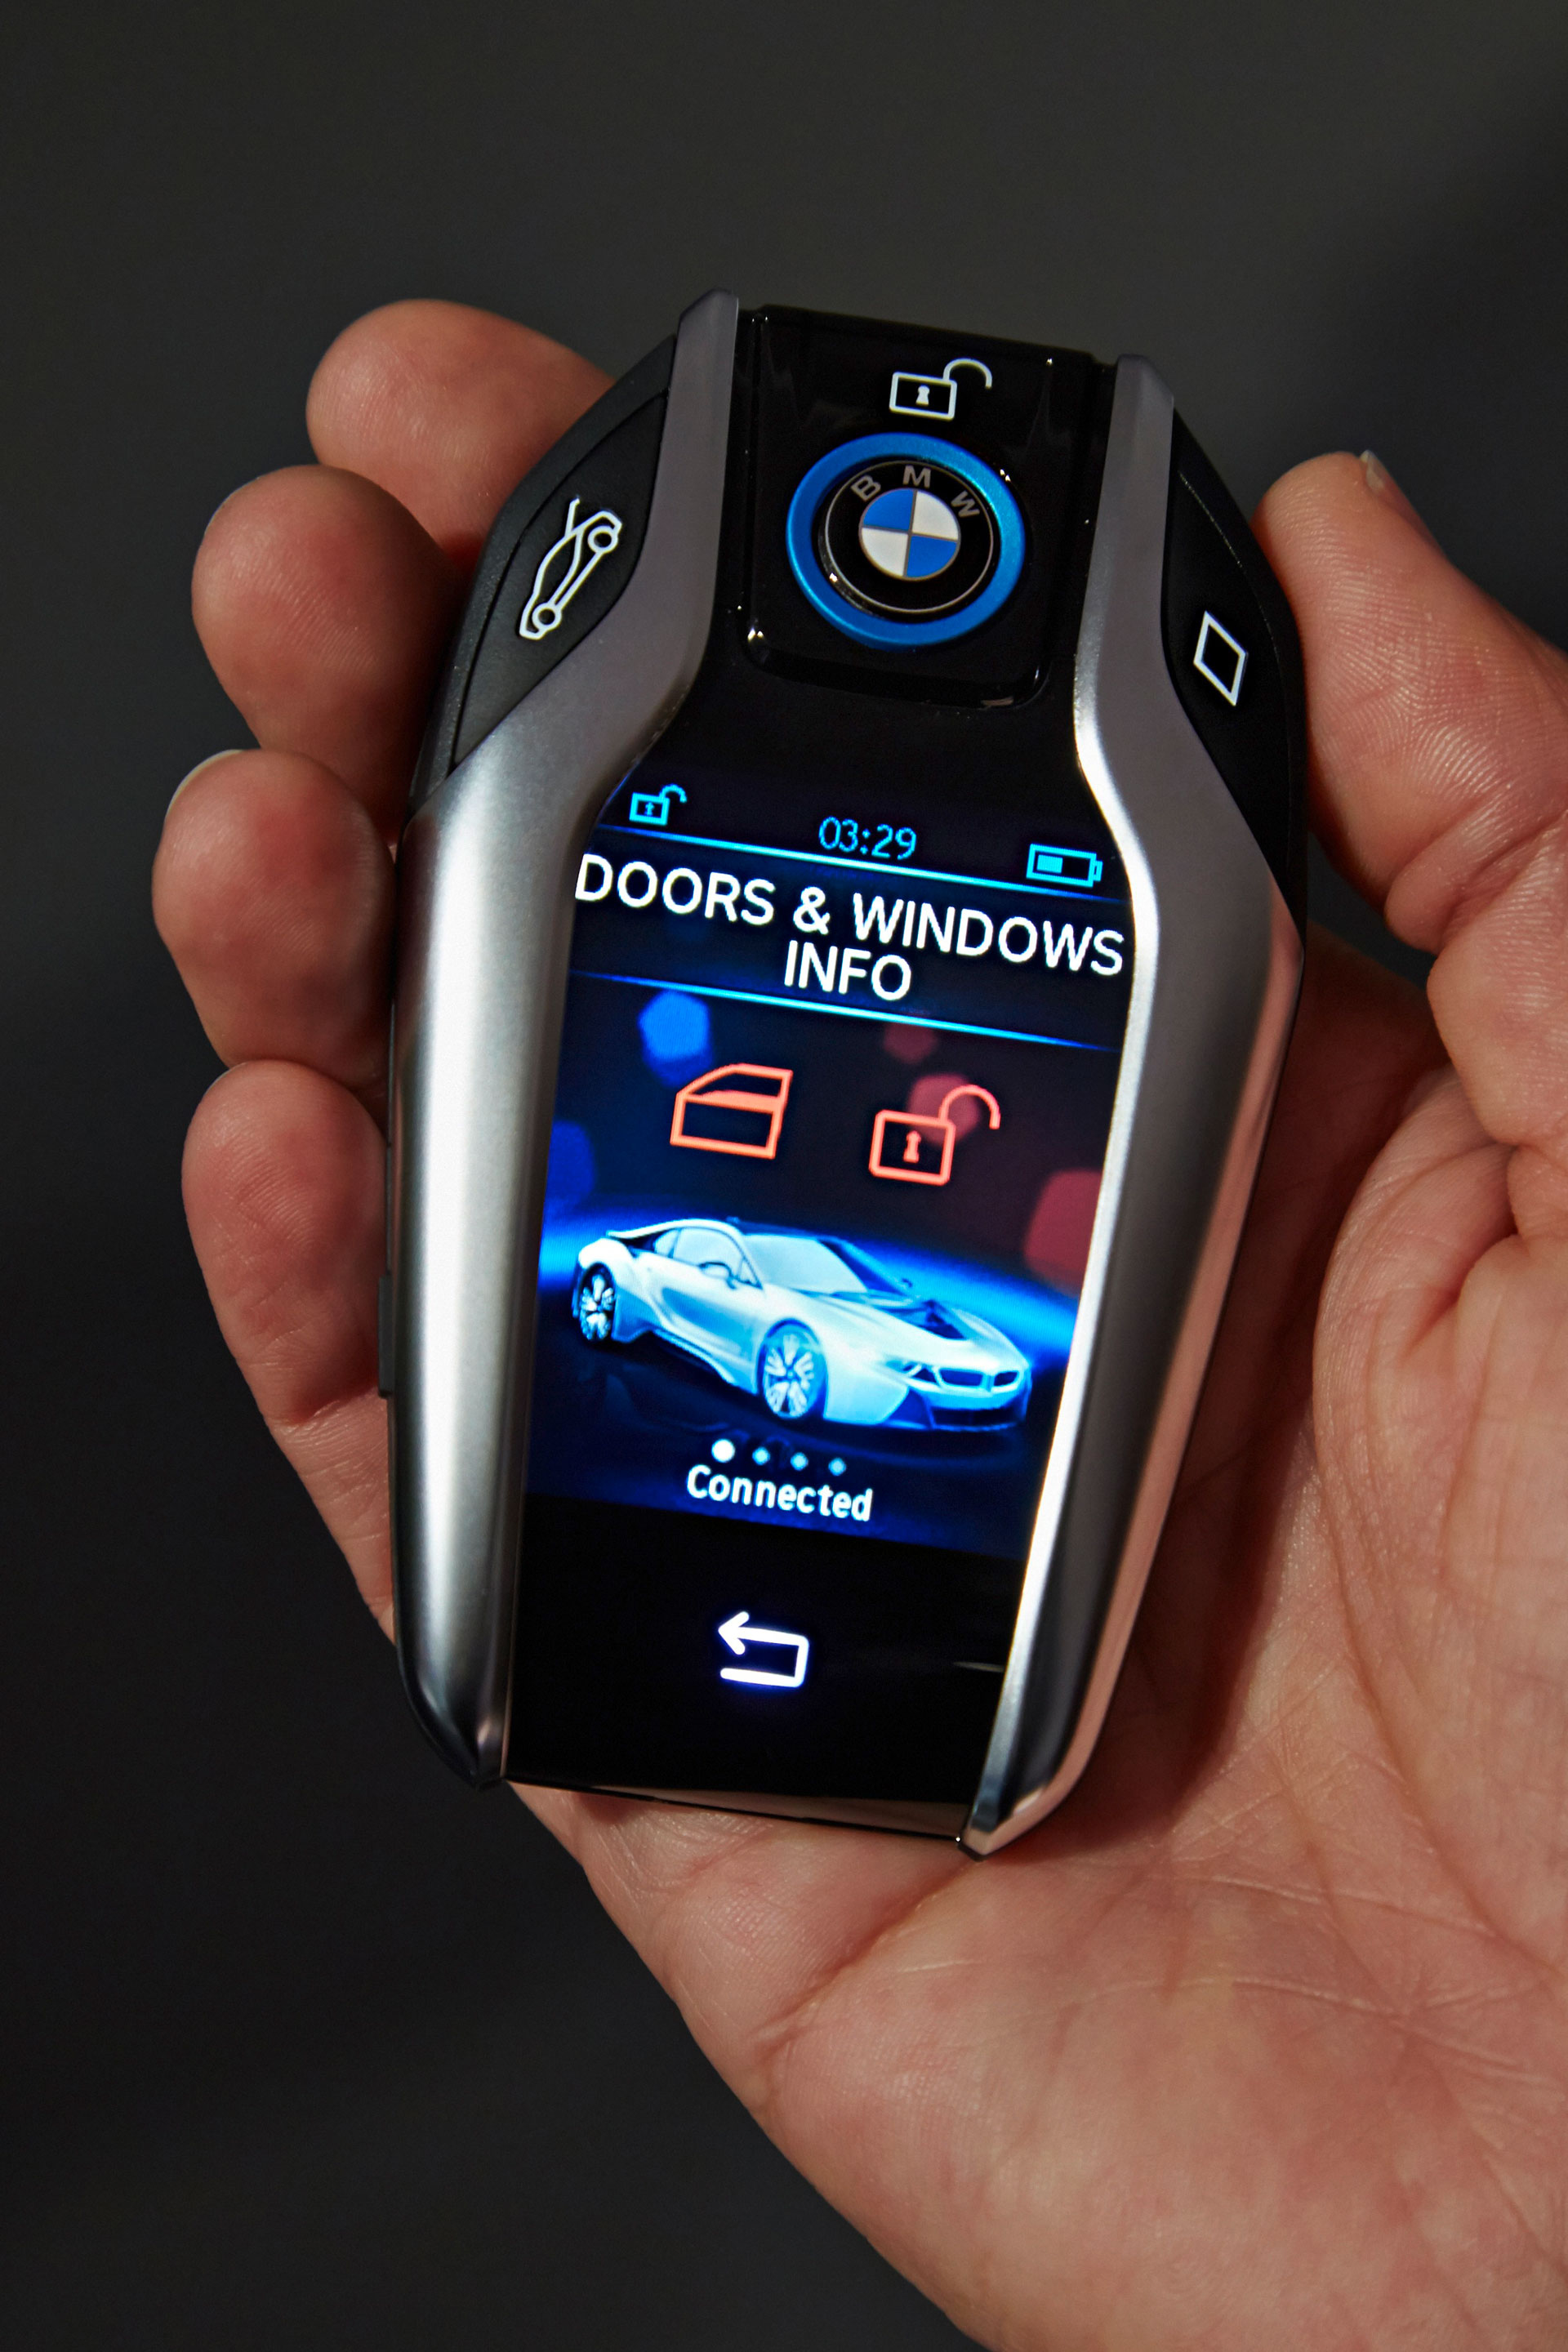 BMW's New Key Fob With LCD Display